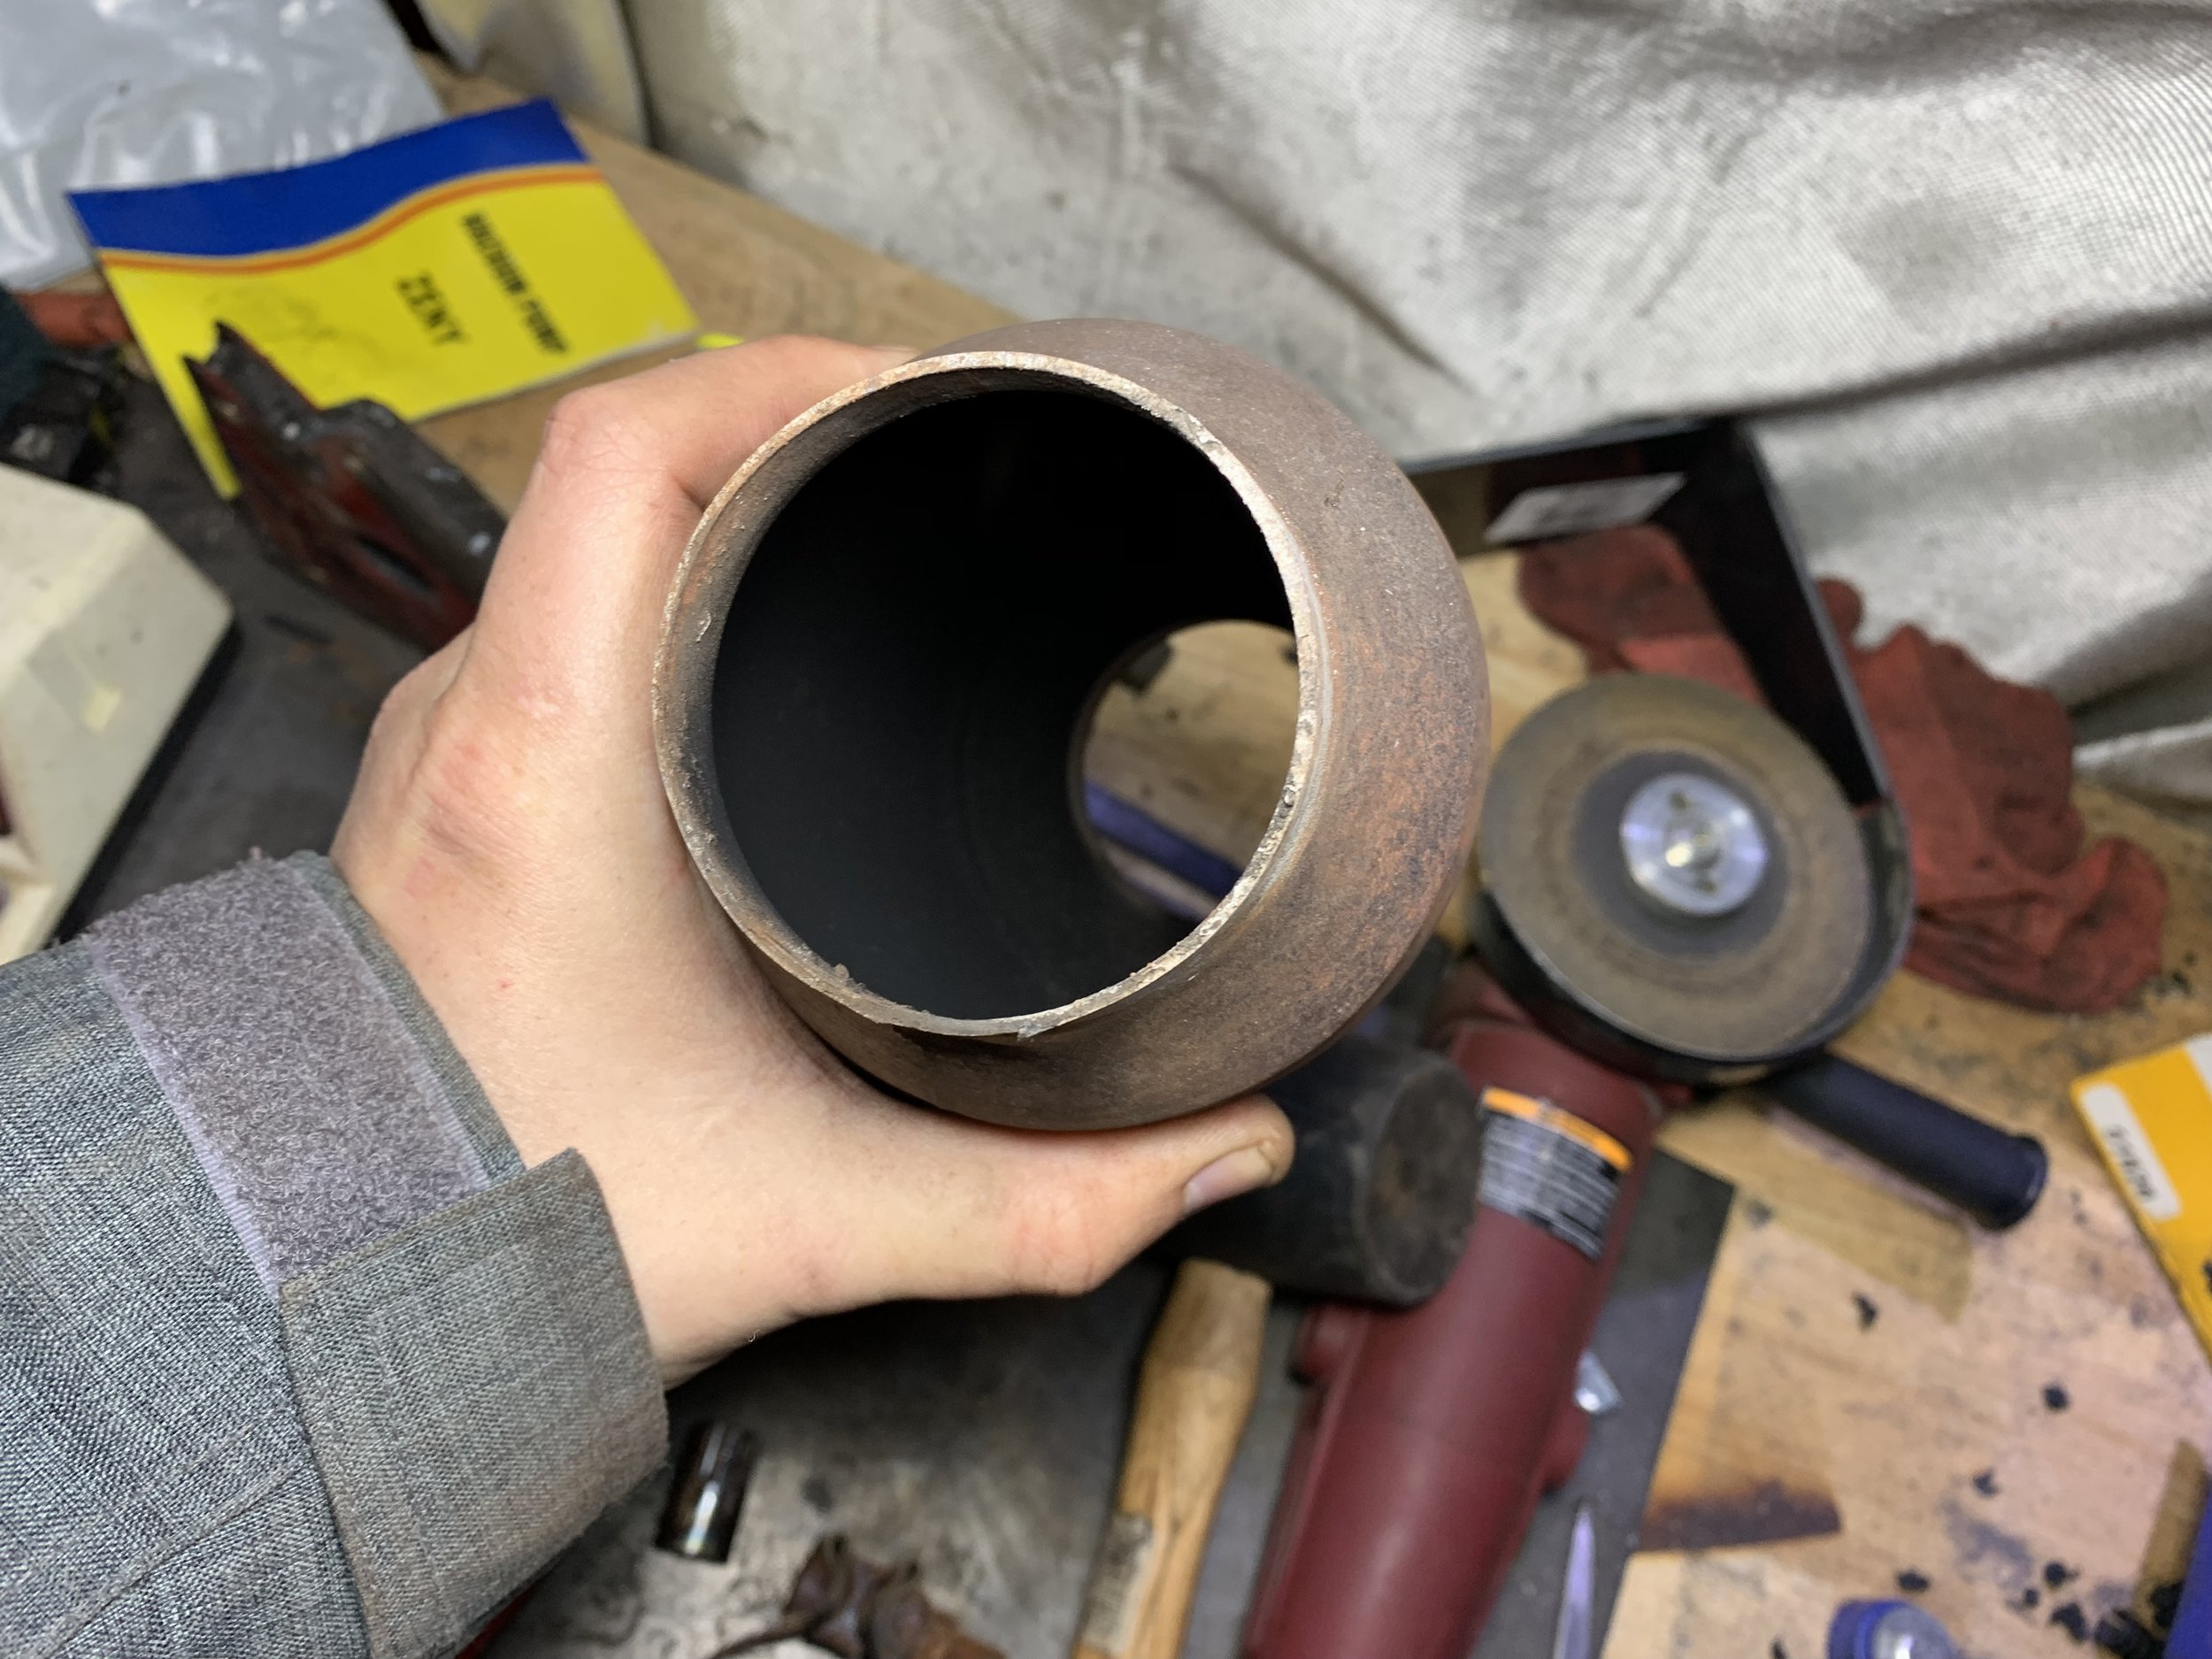 This used to be a catalytic converter. Now it's just a pipe.